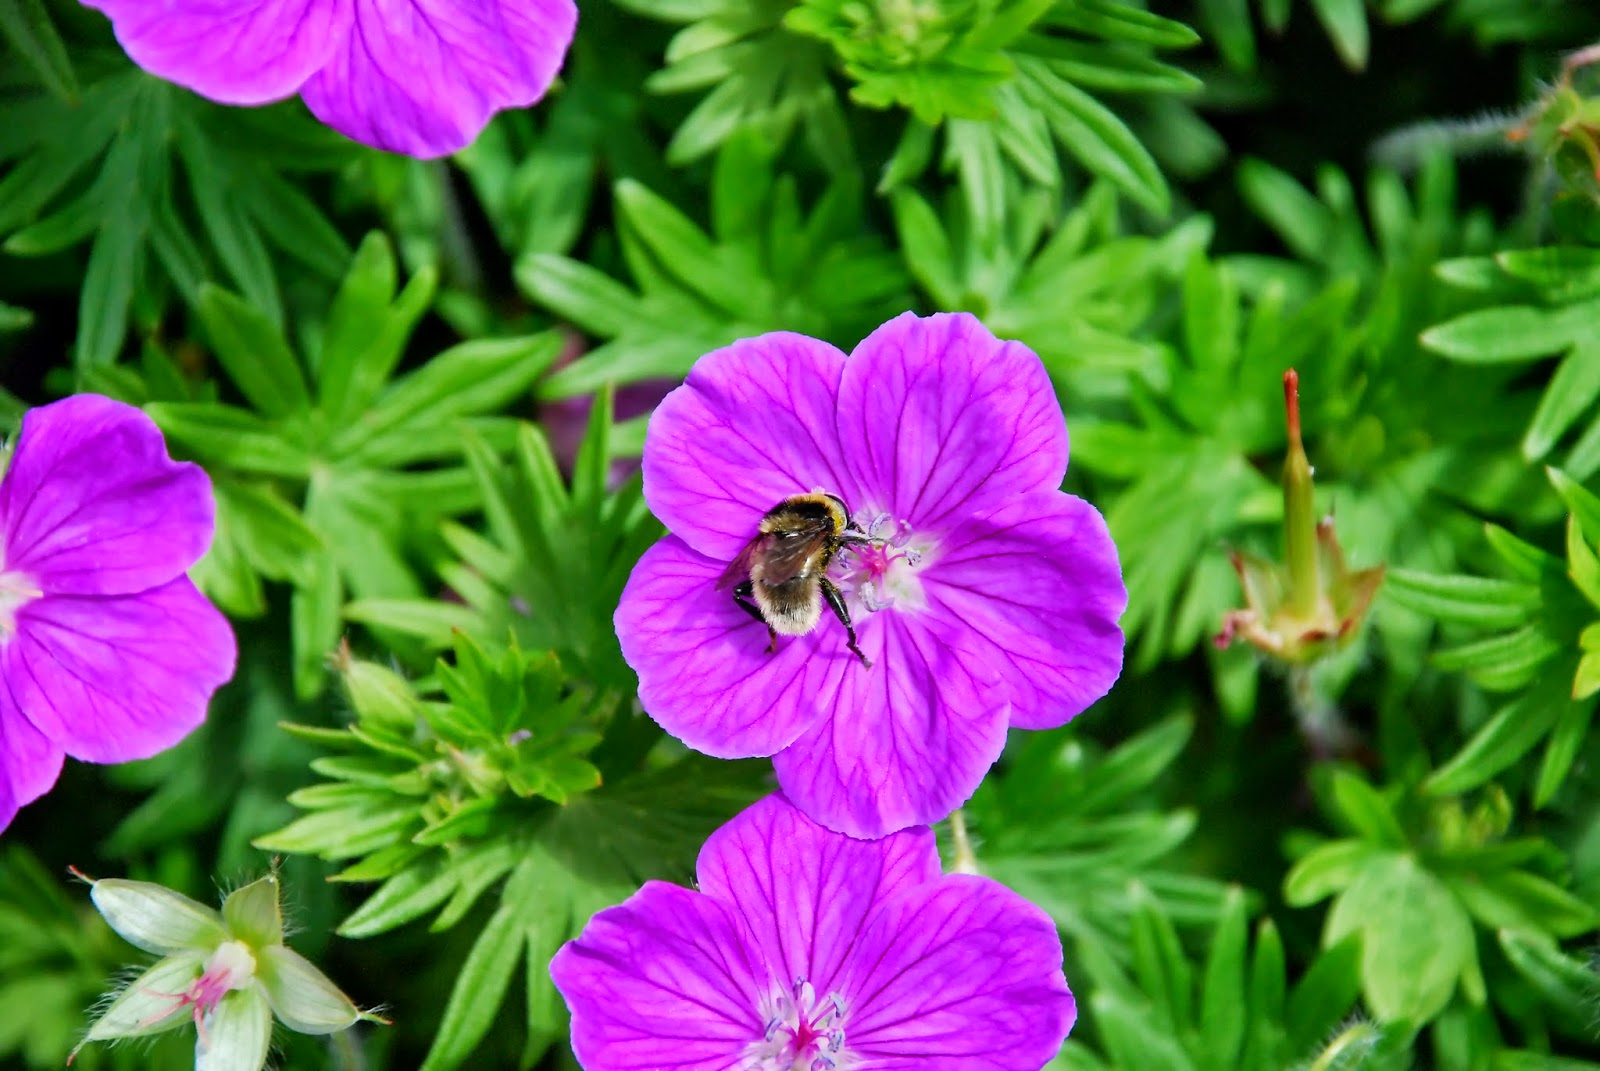 A bee on a pink flower